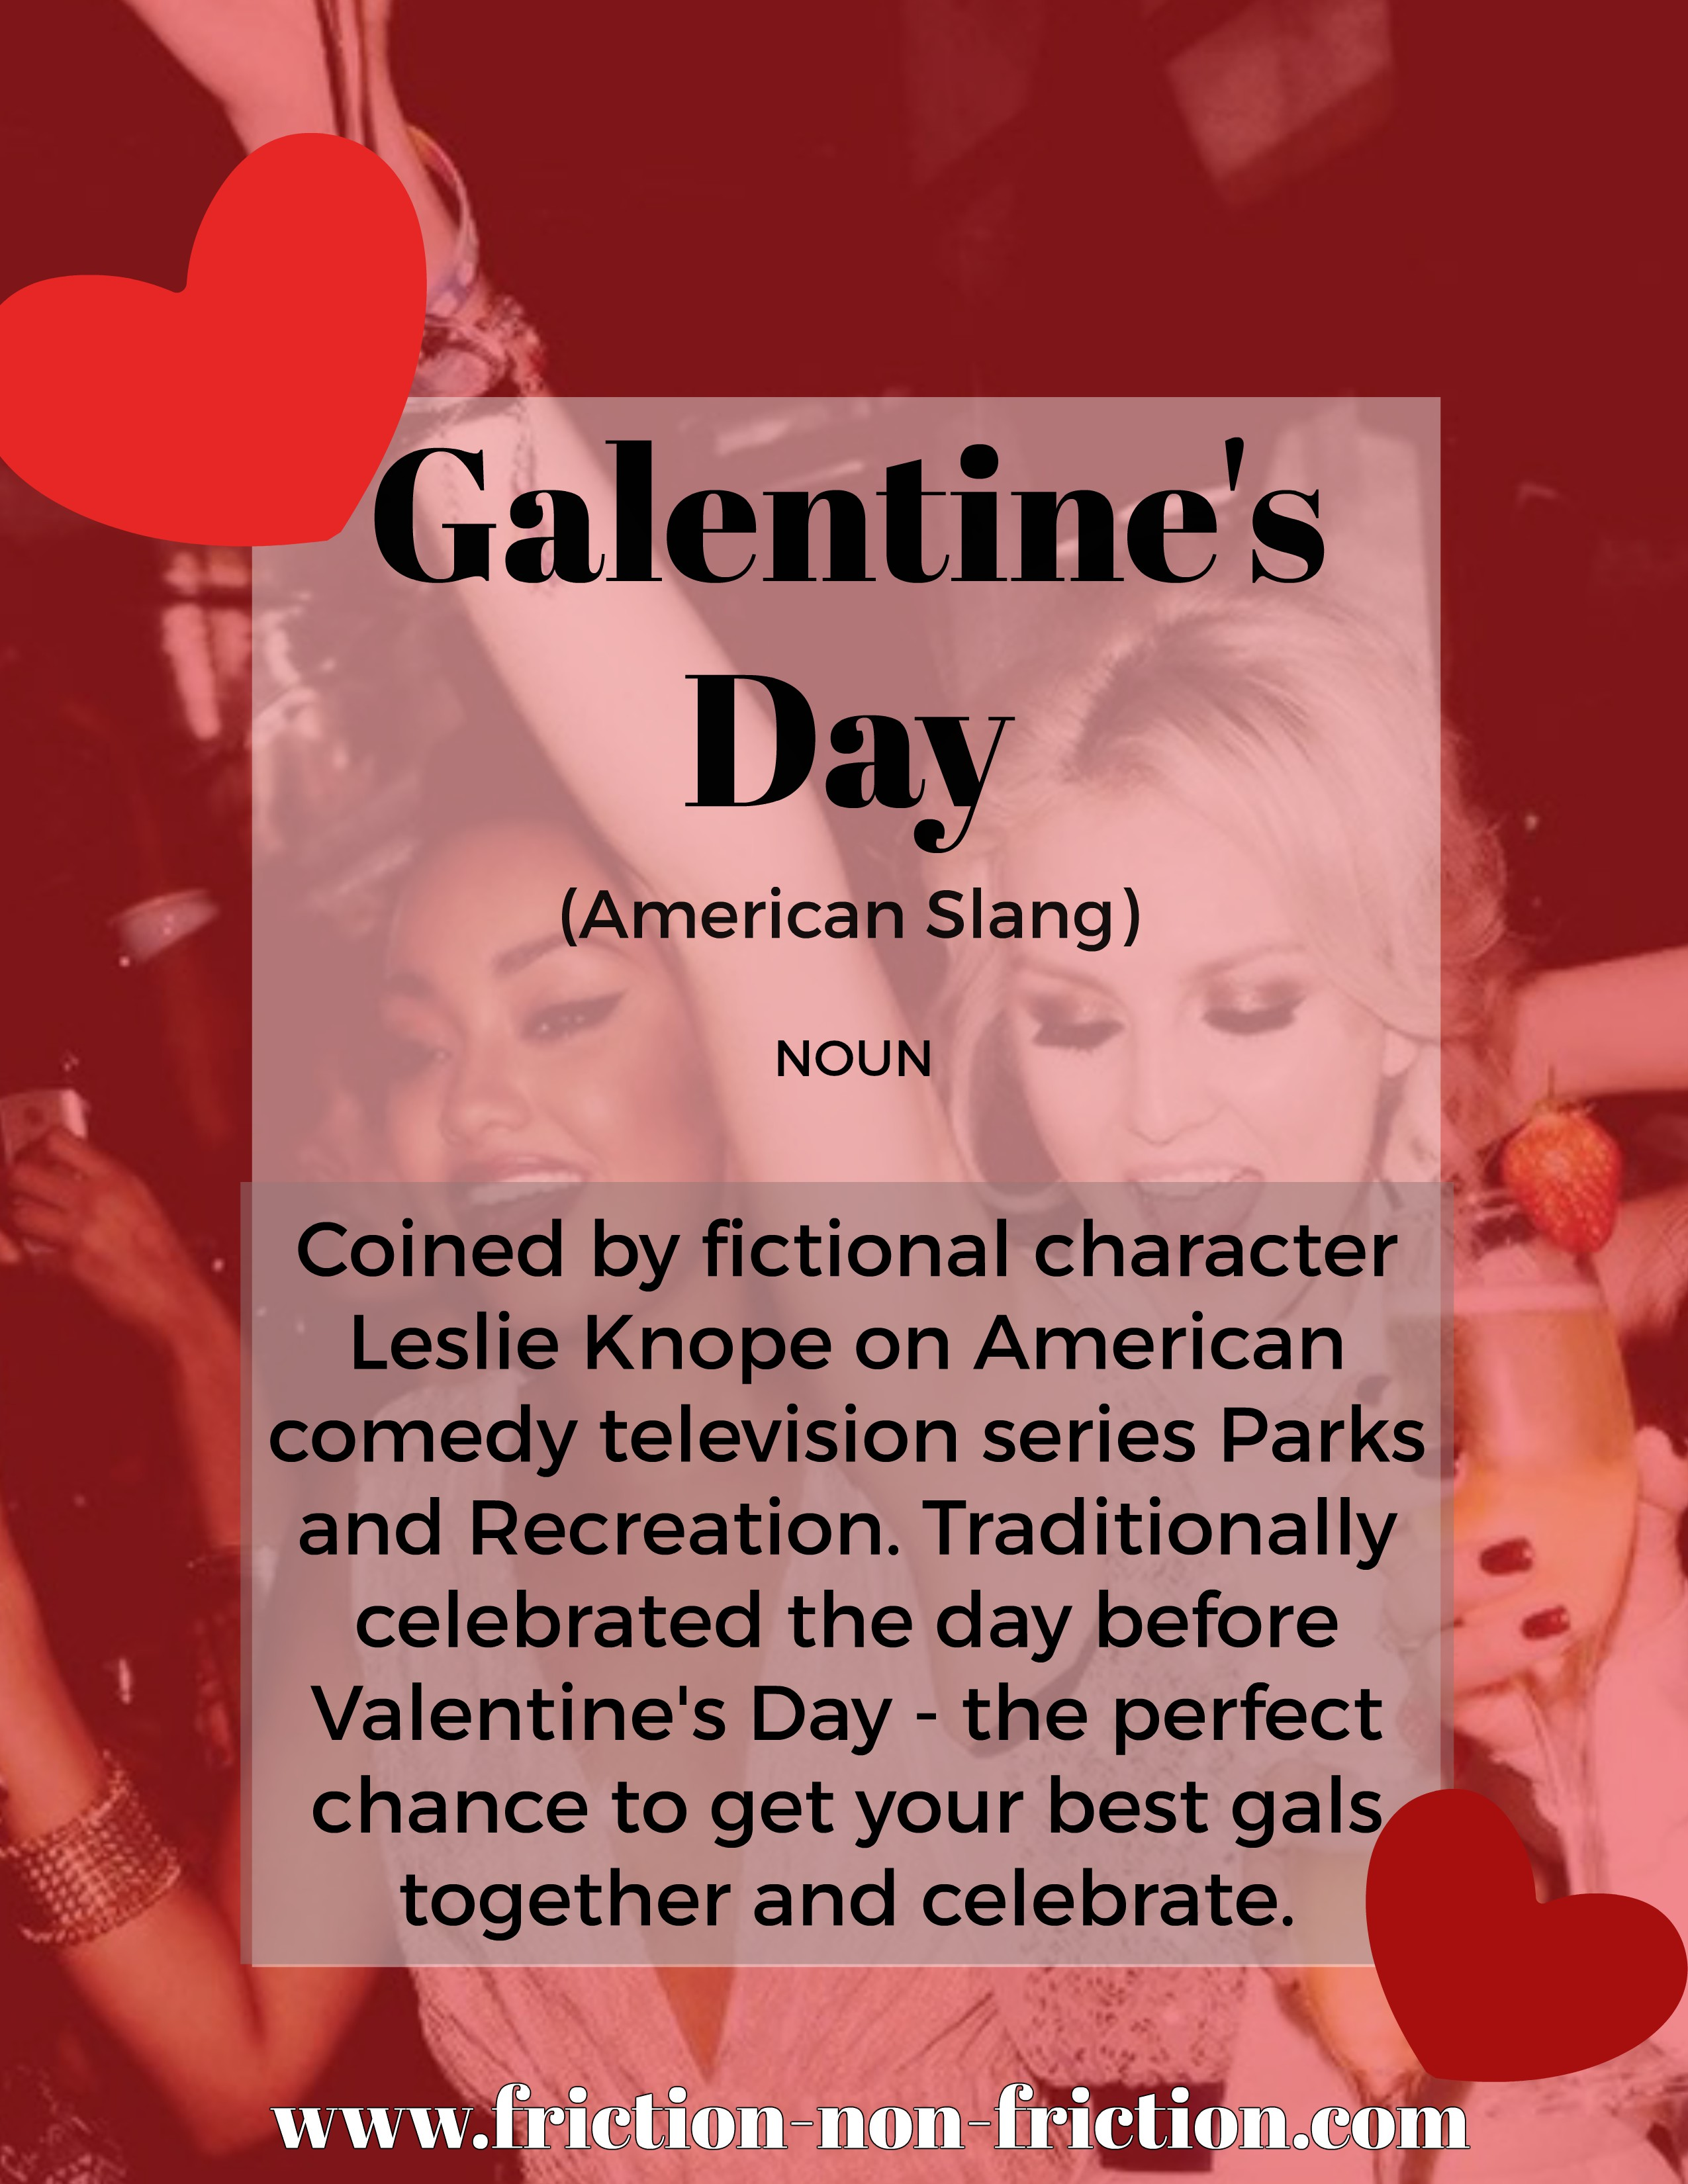 Galentine's Day - another great FRICTIONARY definition from Friction non Friction